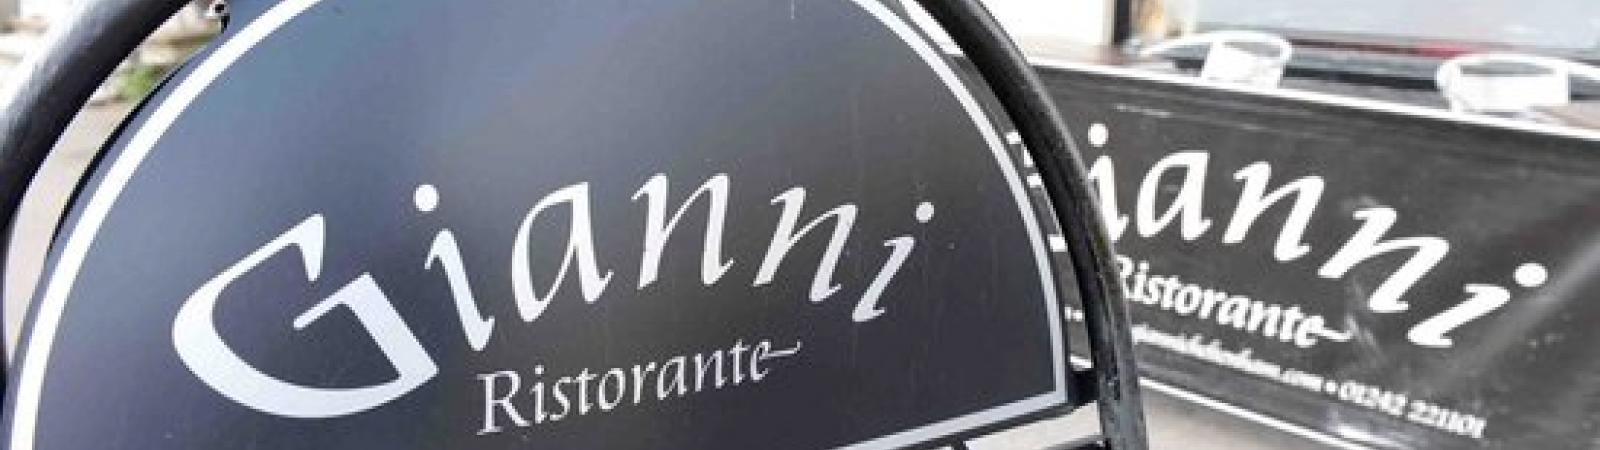 GIANNI'S RESTAURANT on Cheltenham Night Out | Promoting Cheltenham's nightlife for a great night out in Cheltenham.